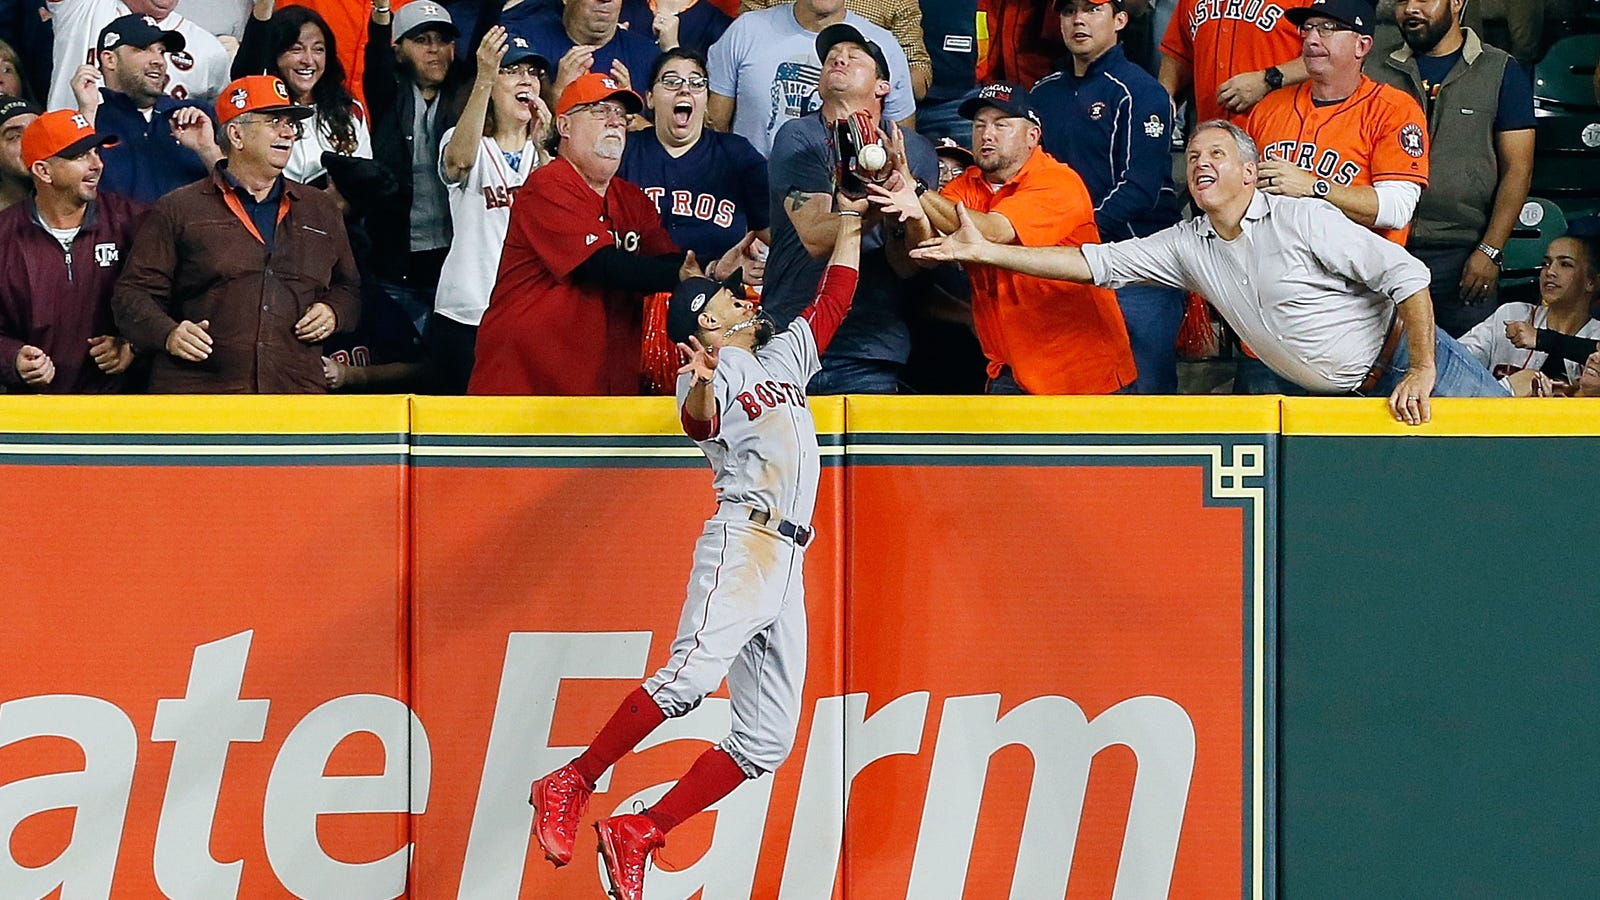 Fan Robs Jose Altuve Of Game-Tying Dinger, Or Maybe Robs Mookie Betts Of Spectacular Catch